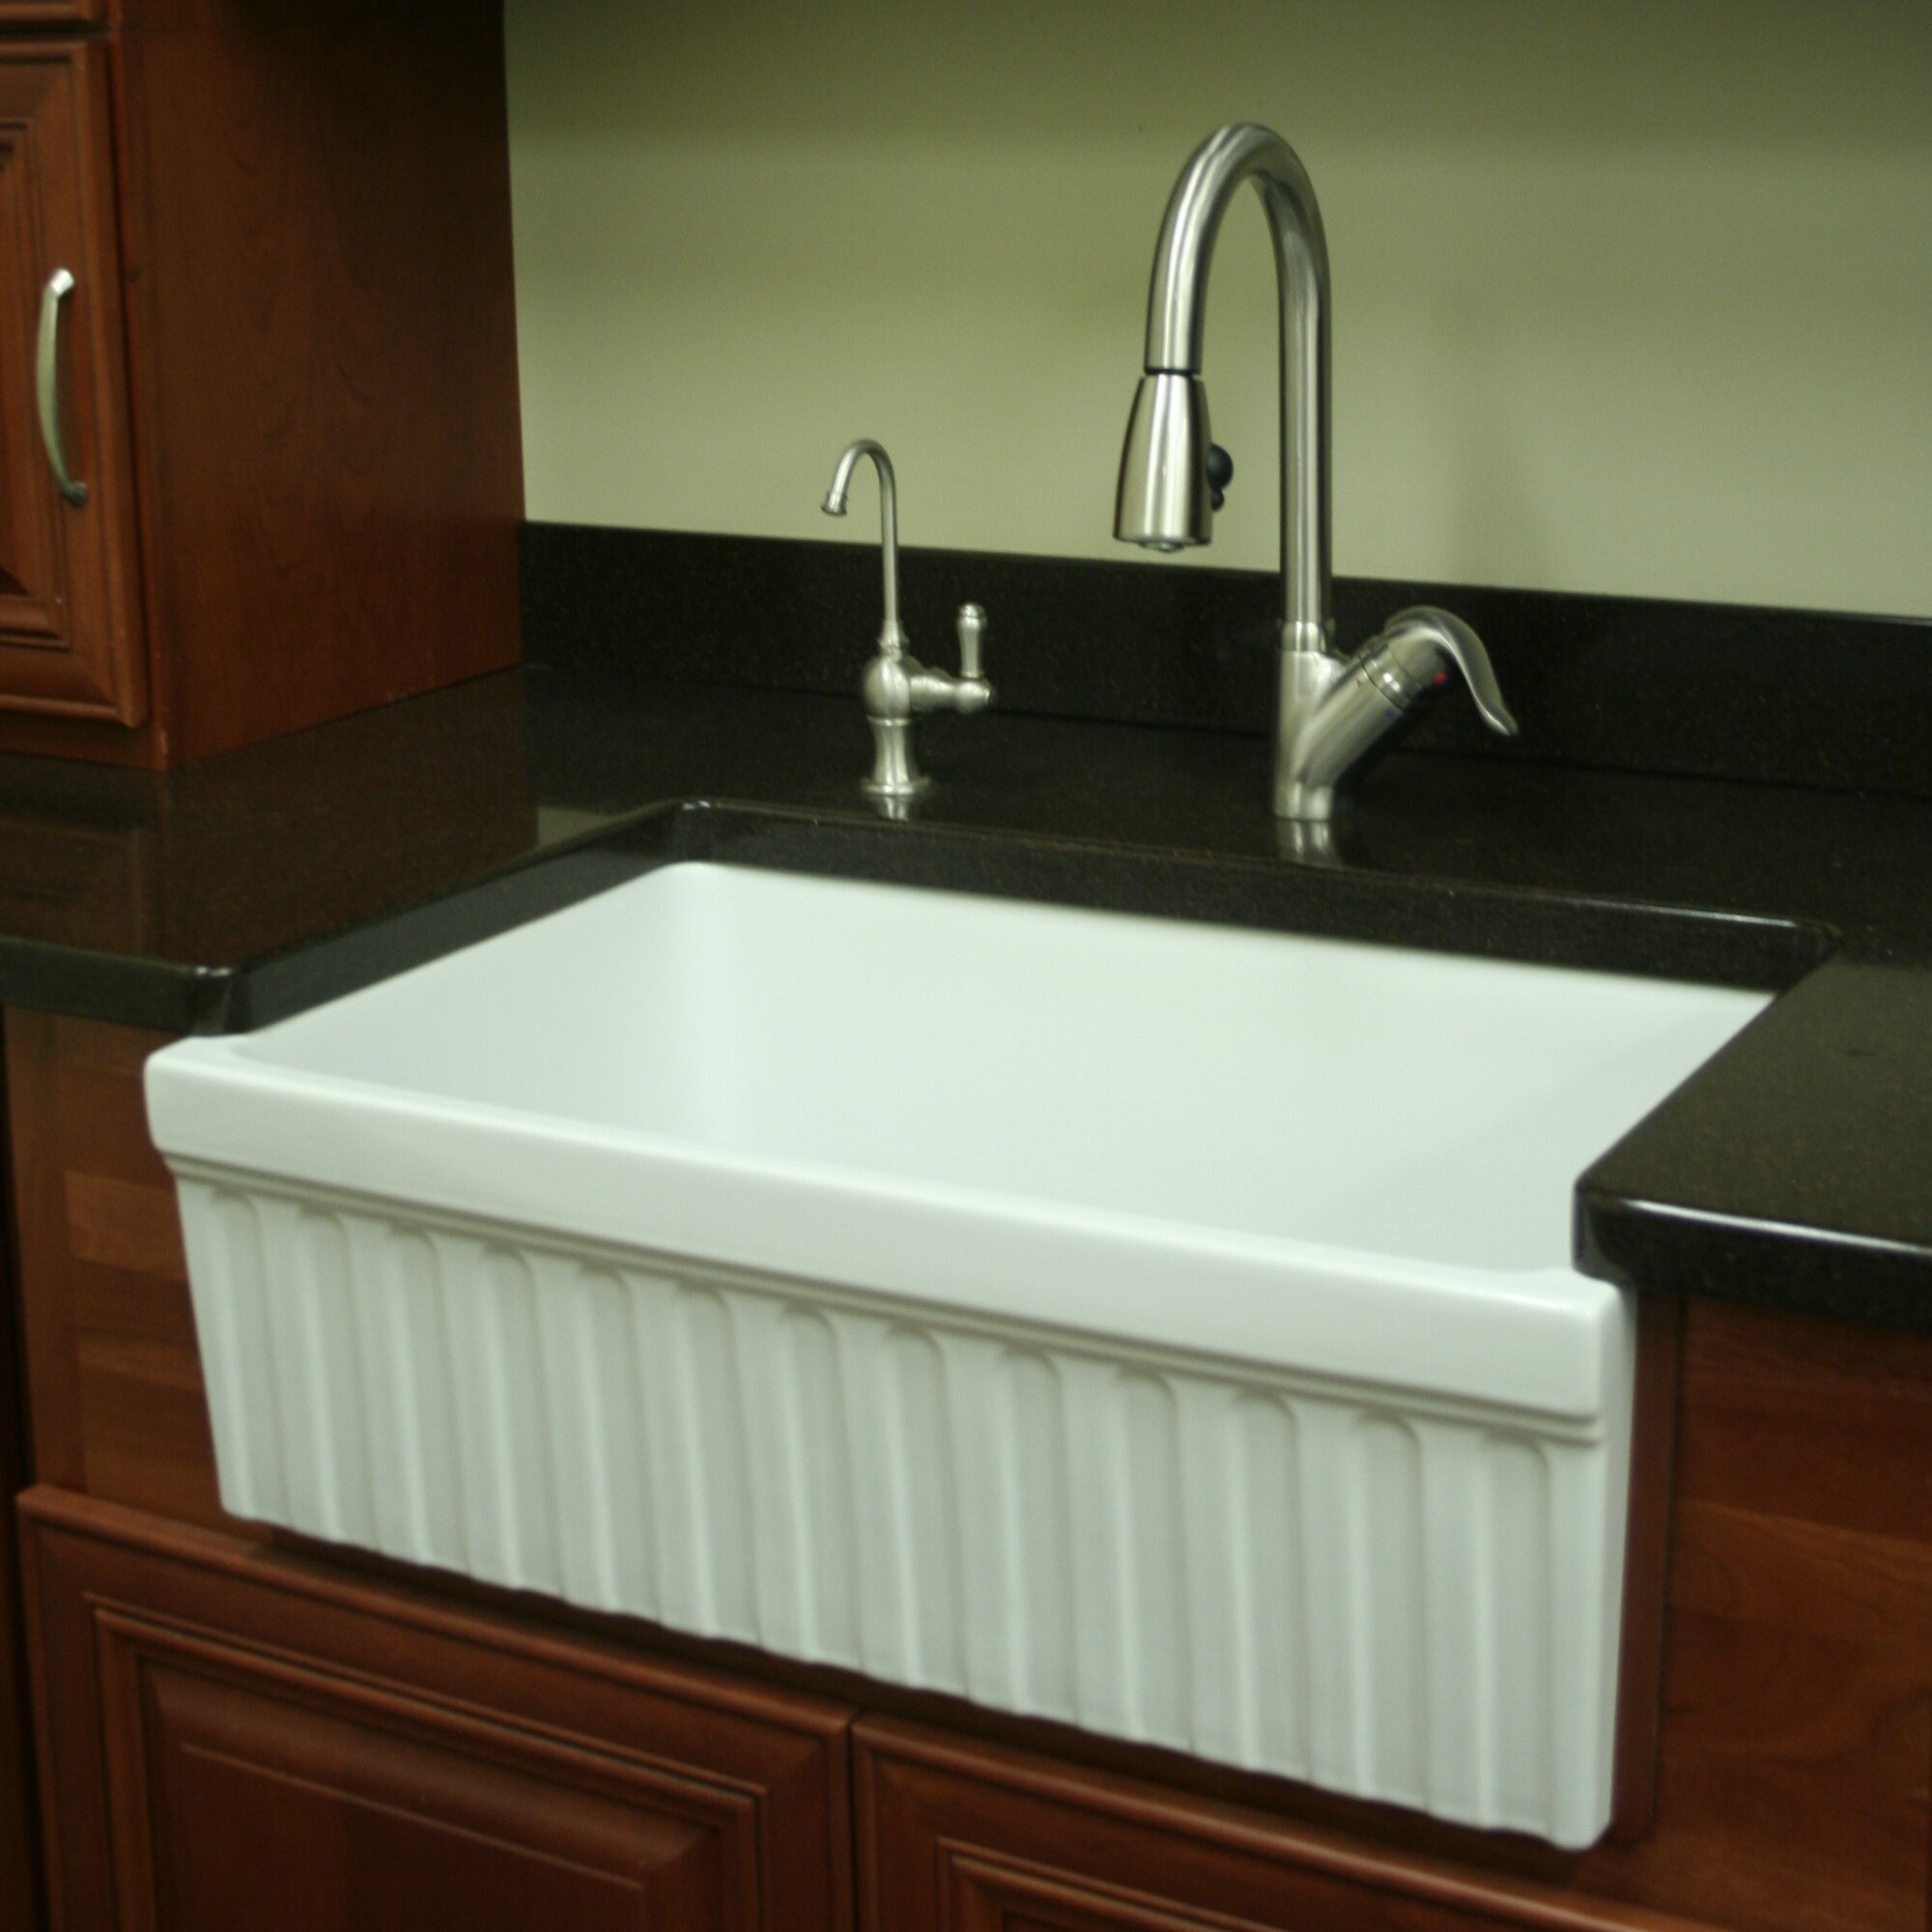 "Whitehaus Collection FarmhausQuatro 30"" x 20"" x 10"" Single Bowl Farmhouse Kitchen Sink & Reviews"